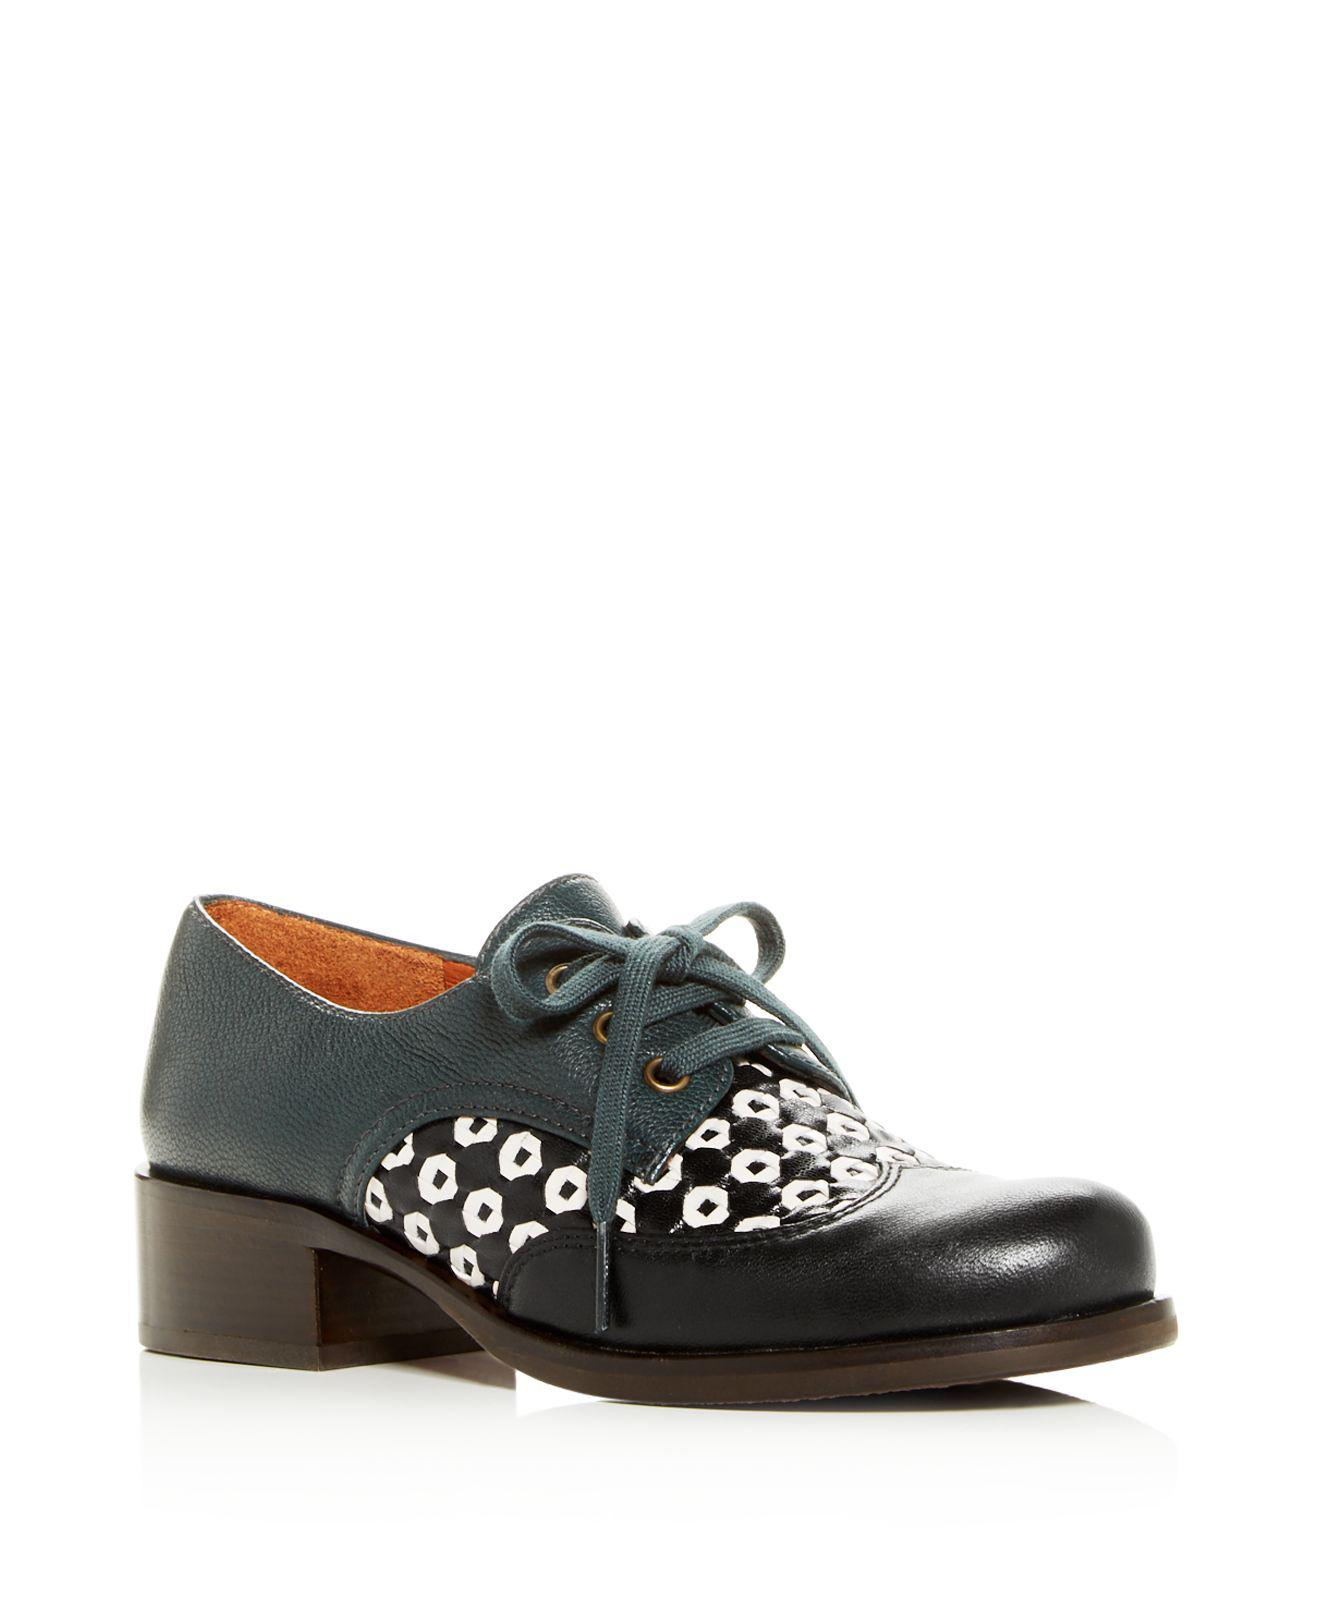 Chie Mihara Women's Tina Woven Leather Block-Heel Oxfords 9oSLQDqhiv